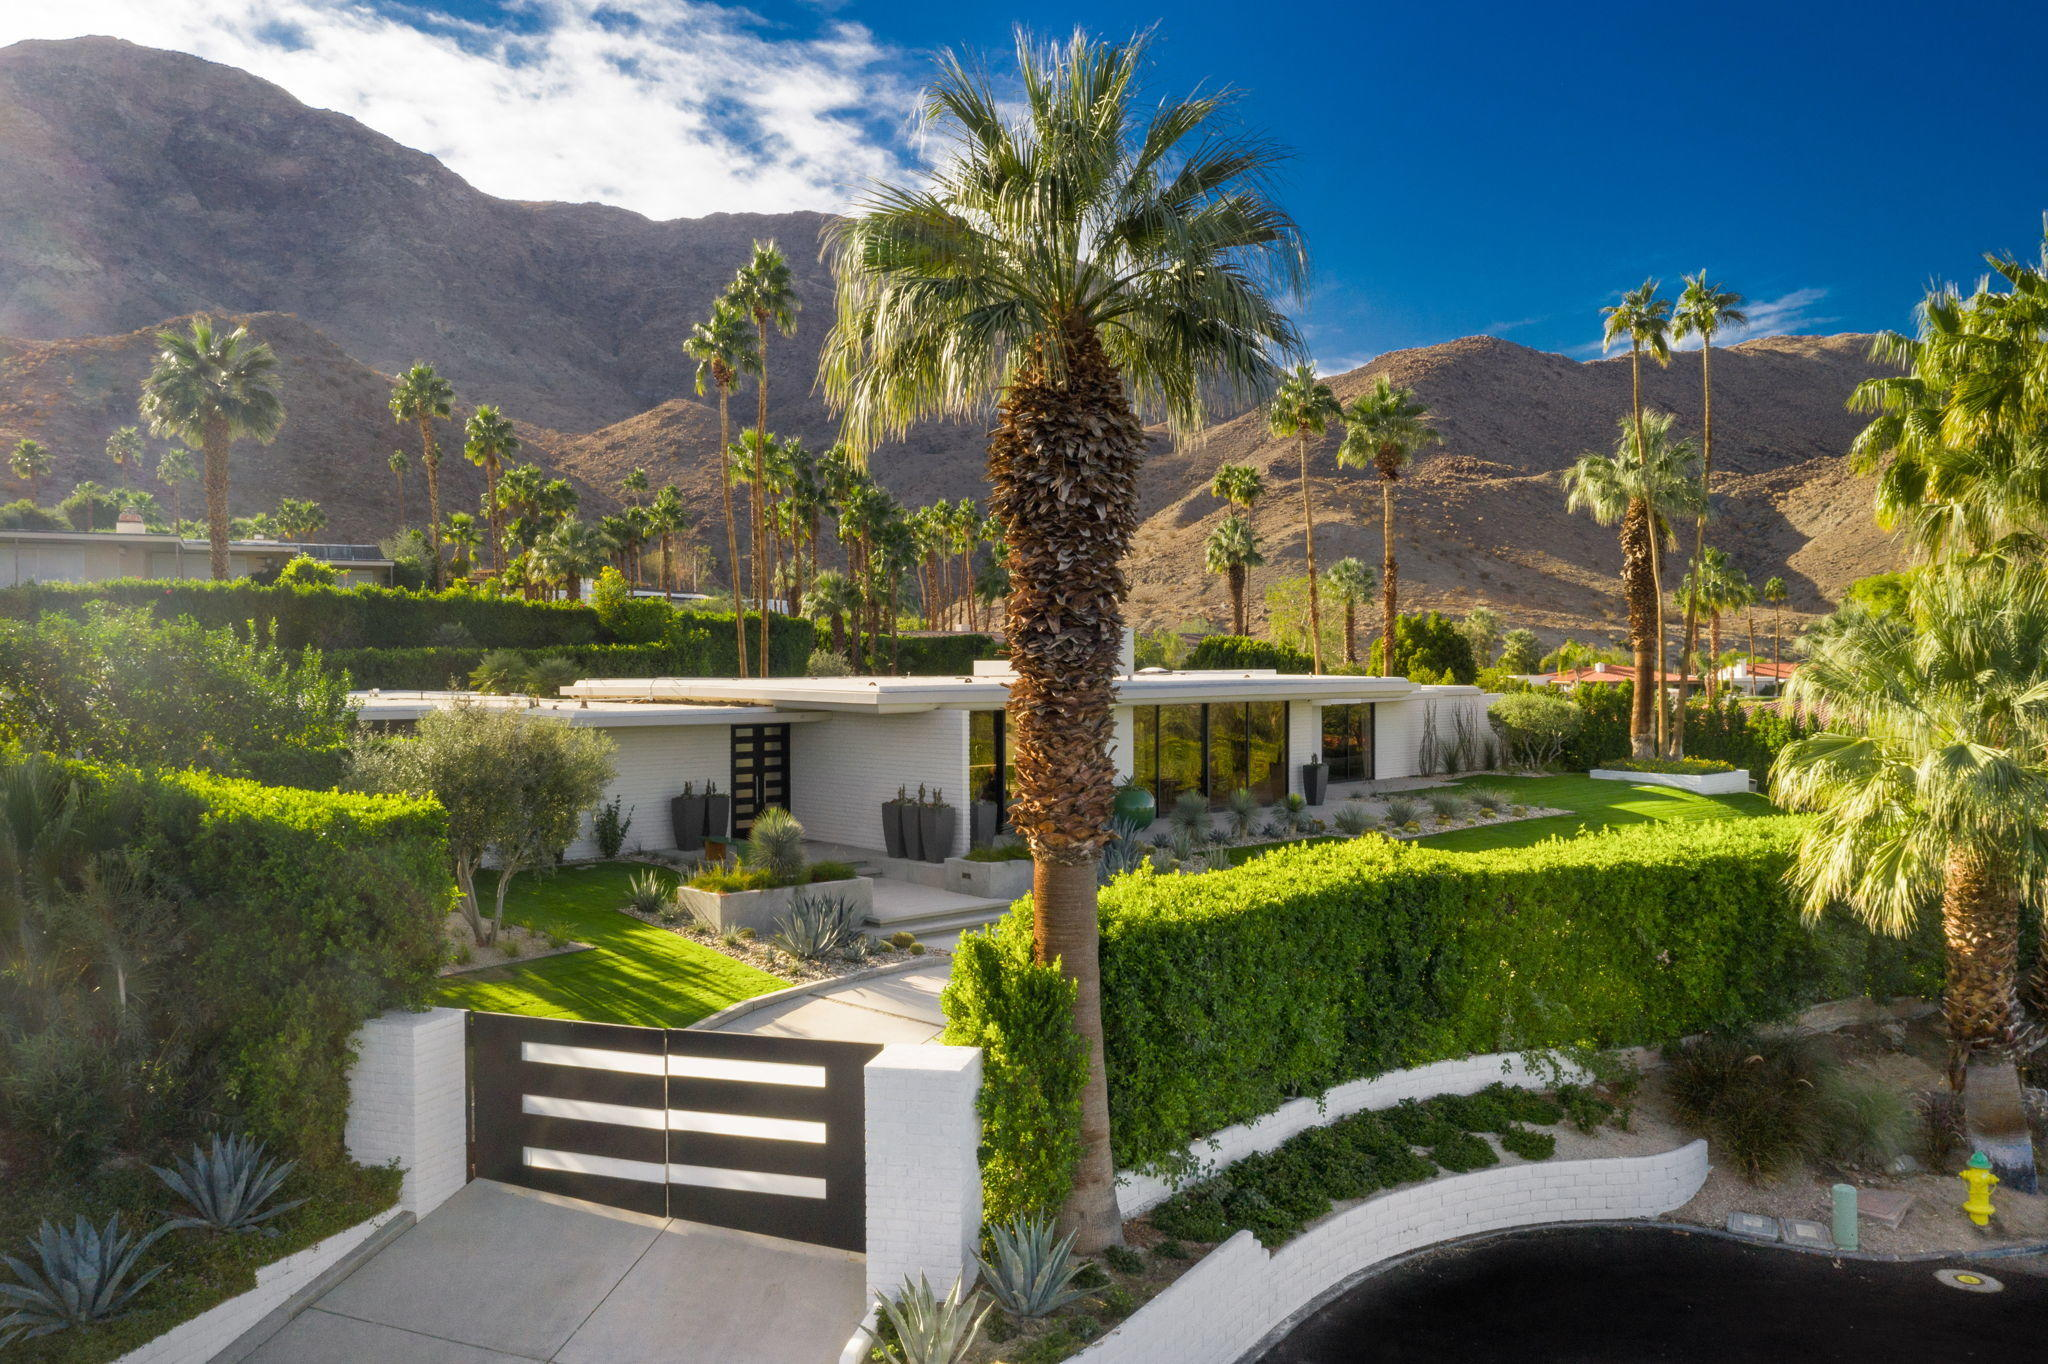 Exceptional modern estate located high above the desert floor in the  desirable gated community of Thunderbird Heights; offering 360 degree views. This sleek and understated luxury home boasts steal beam construction with slump stone walls iconic of architects William Cody and Donald Wexler. Attention to detail in design and function provide a Zen environment and evoke peaceful living while in perfect harmony with the desert lifestyle, Entertain your guests in an open great room with walls of glass bringing the outdoors in and providing a panoramic vista of the mountains,, outdoor lush landscape and the city lights below.4 bedroom suites , separate office , 4.5 baths with approx 4700 sqft of living space. The home has been meticulously renovated with attention to detail in the custom luxury materials and finishes used to compliment the  architectural design and linear details of  the space . The home is offered designer furnished with exquisite custom European Mid Century modern furniture. Exclusion list to be provided.